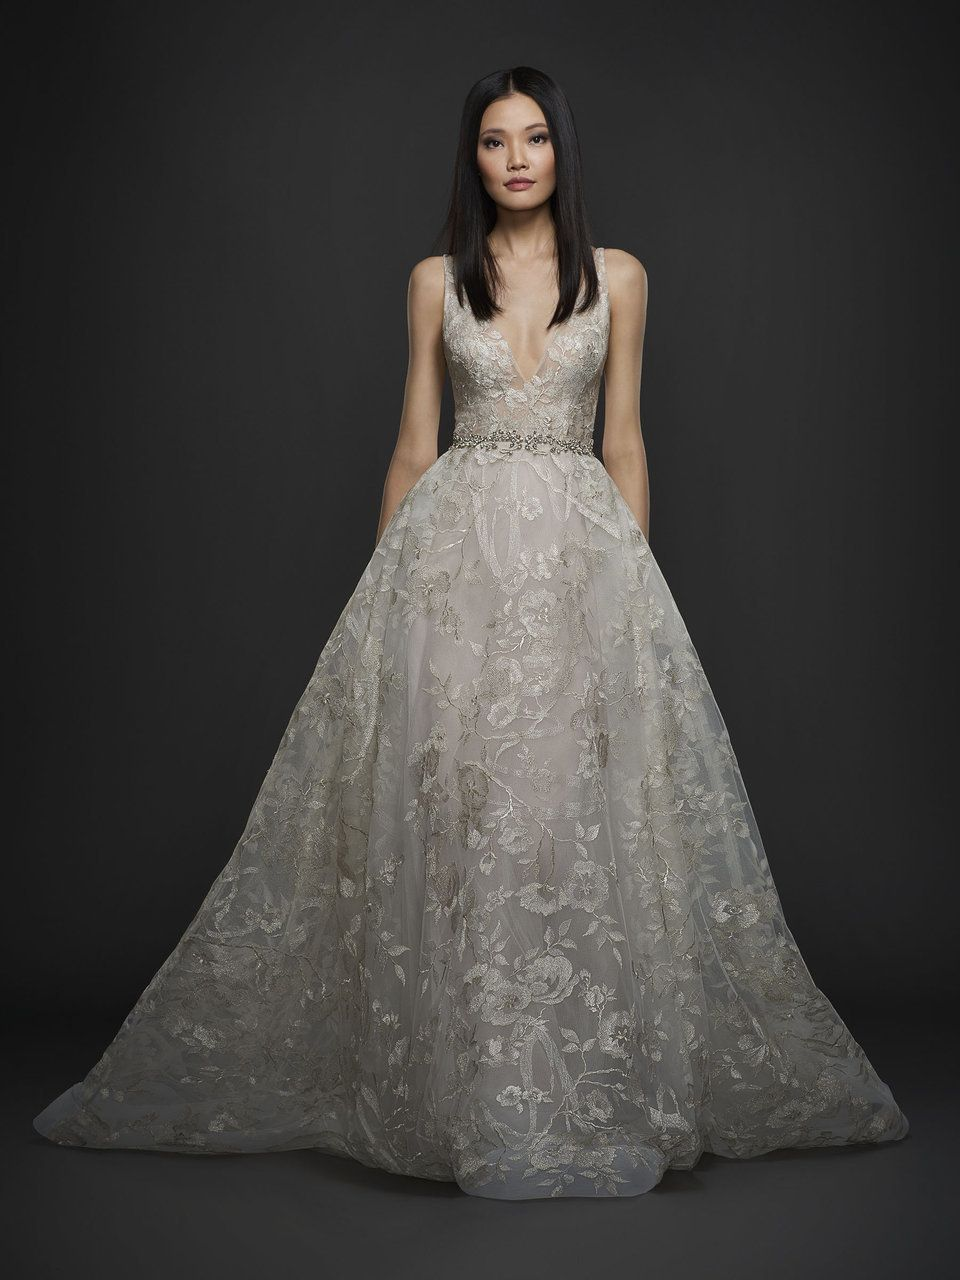 Good Bridals By Lori   Lazaro 3759, In Store (http://shop.bridalsbylori.com/ Lazaro 3759/)